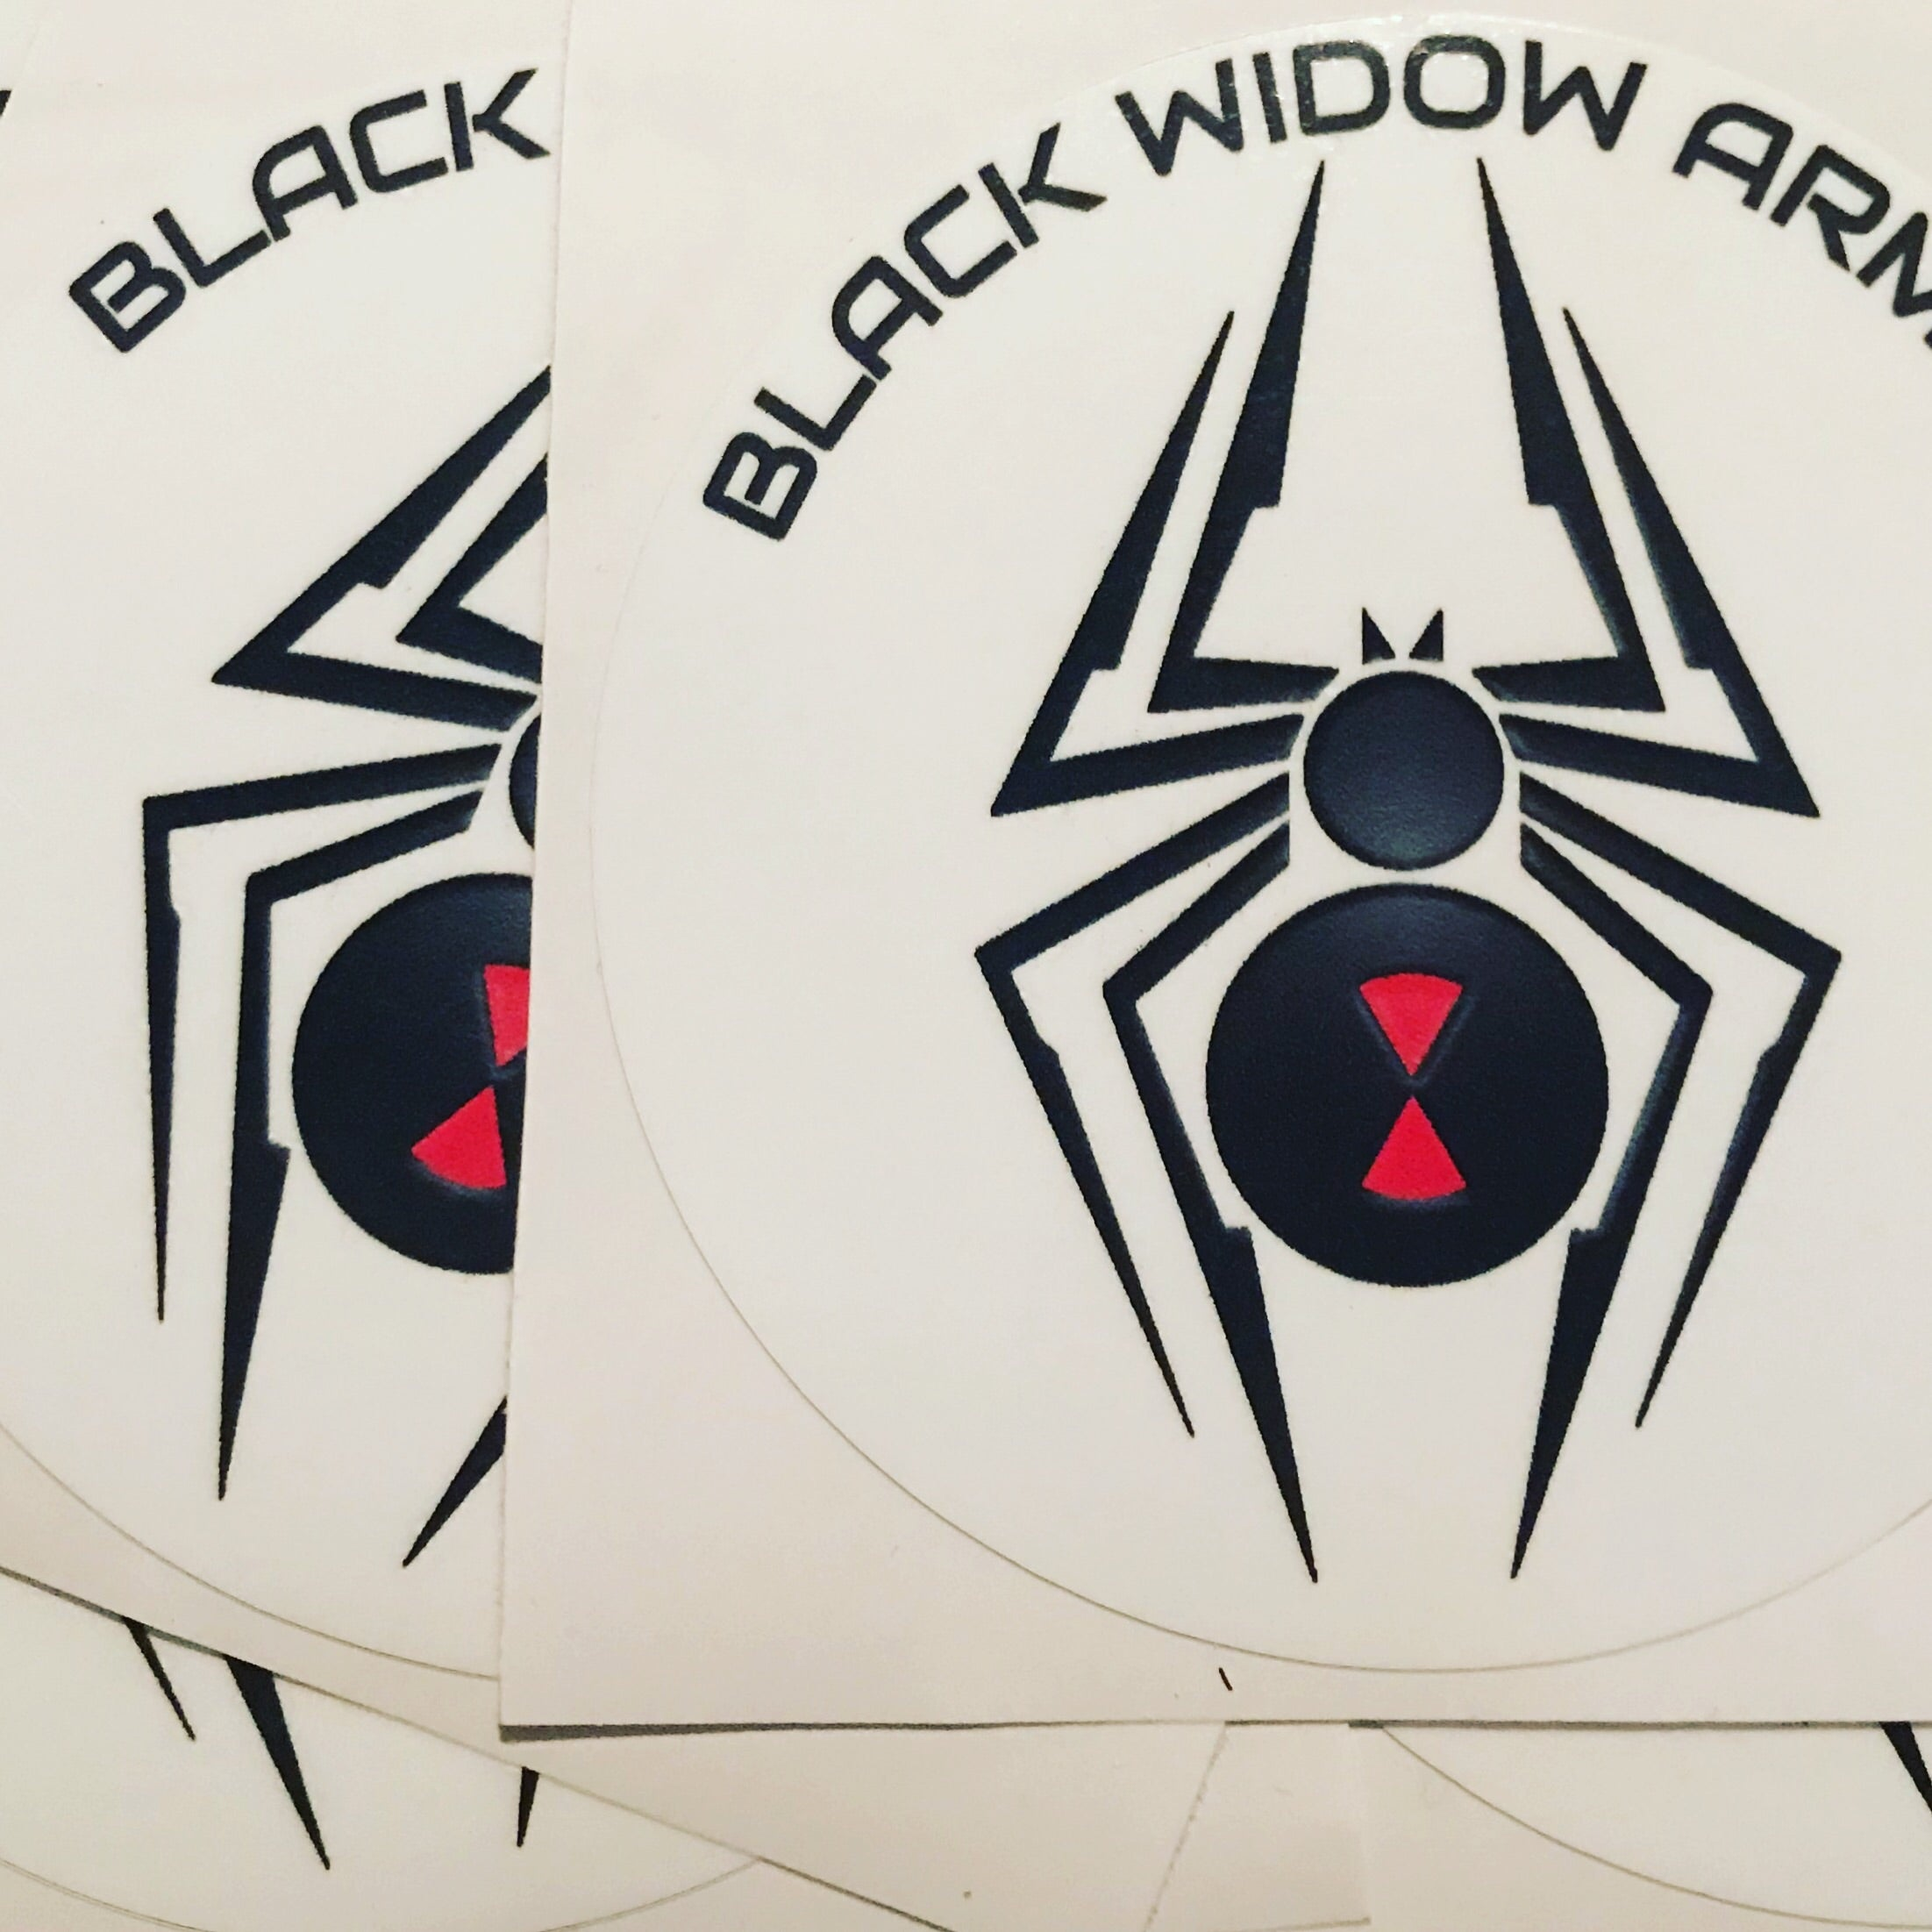 Black Widow Armor Decal Stickers 2 Pack